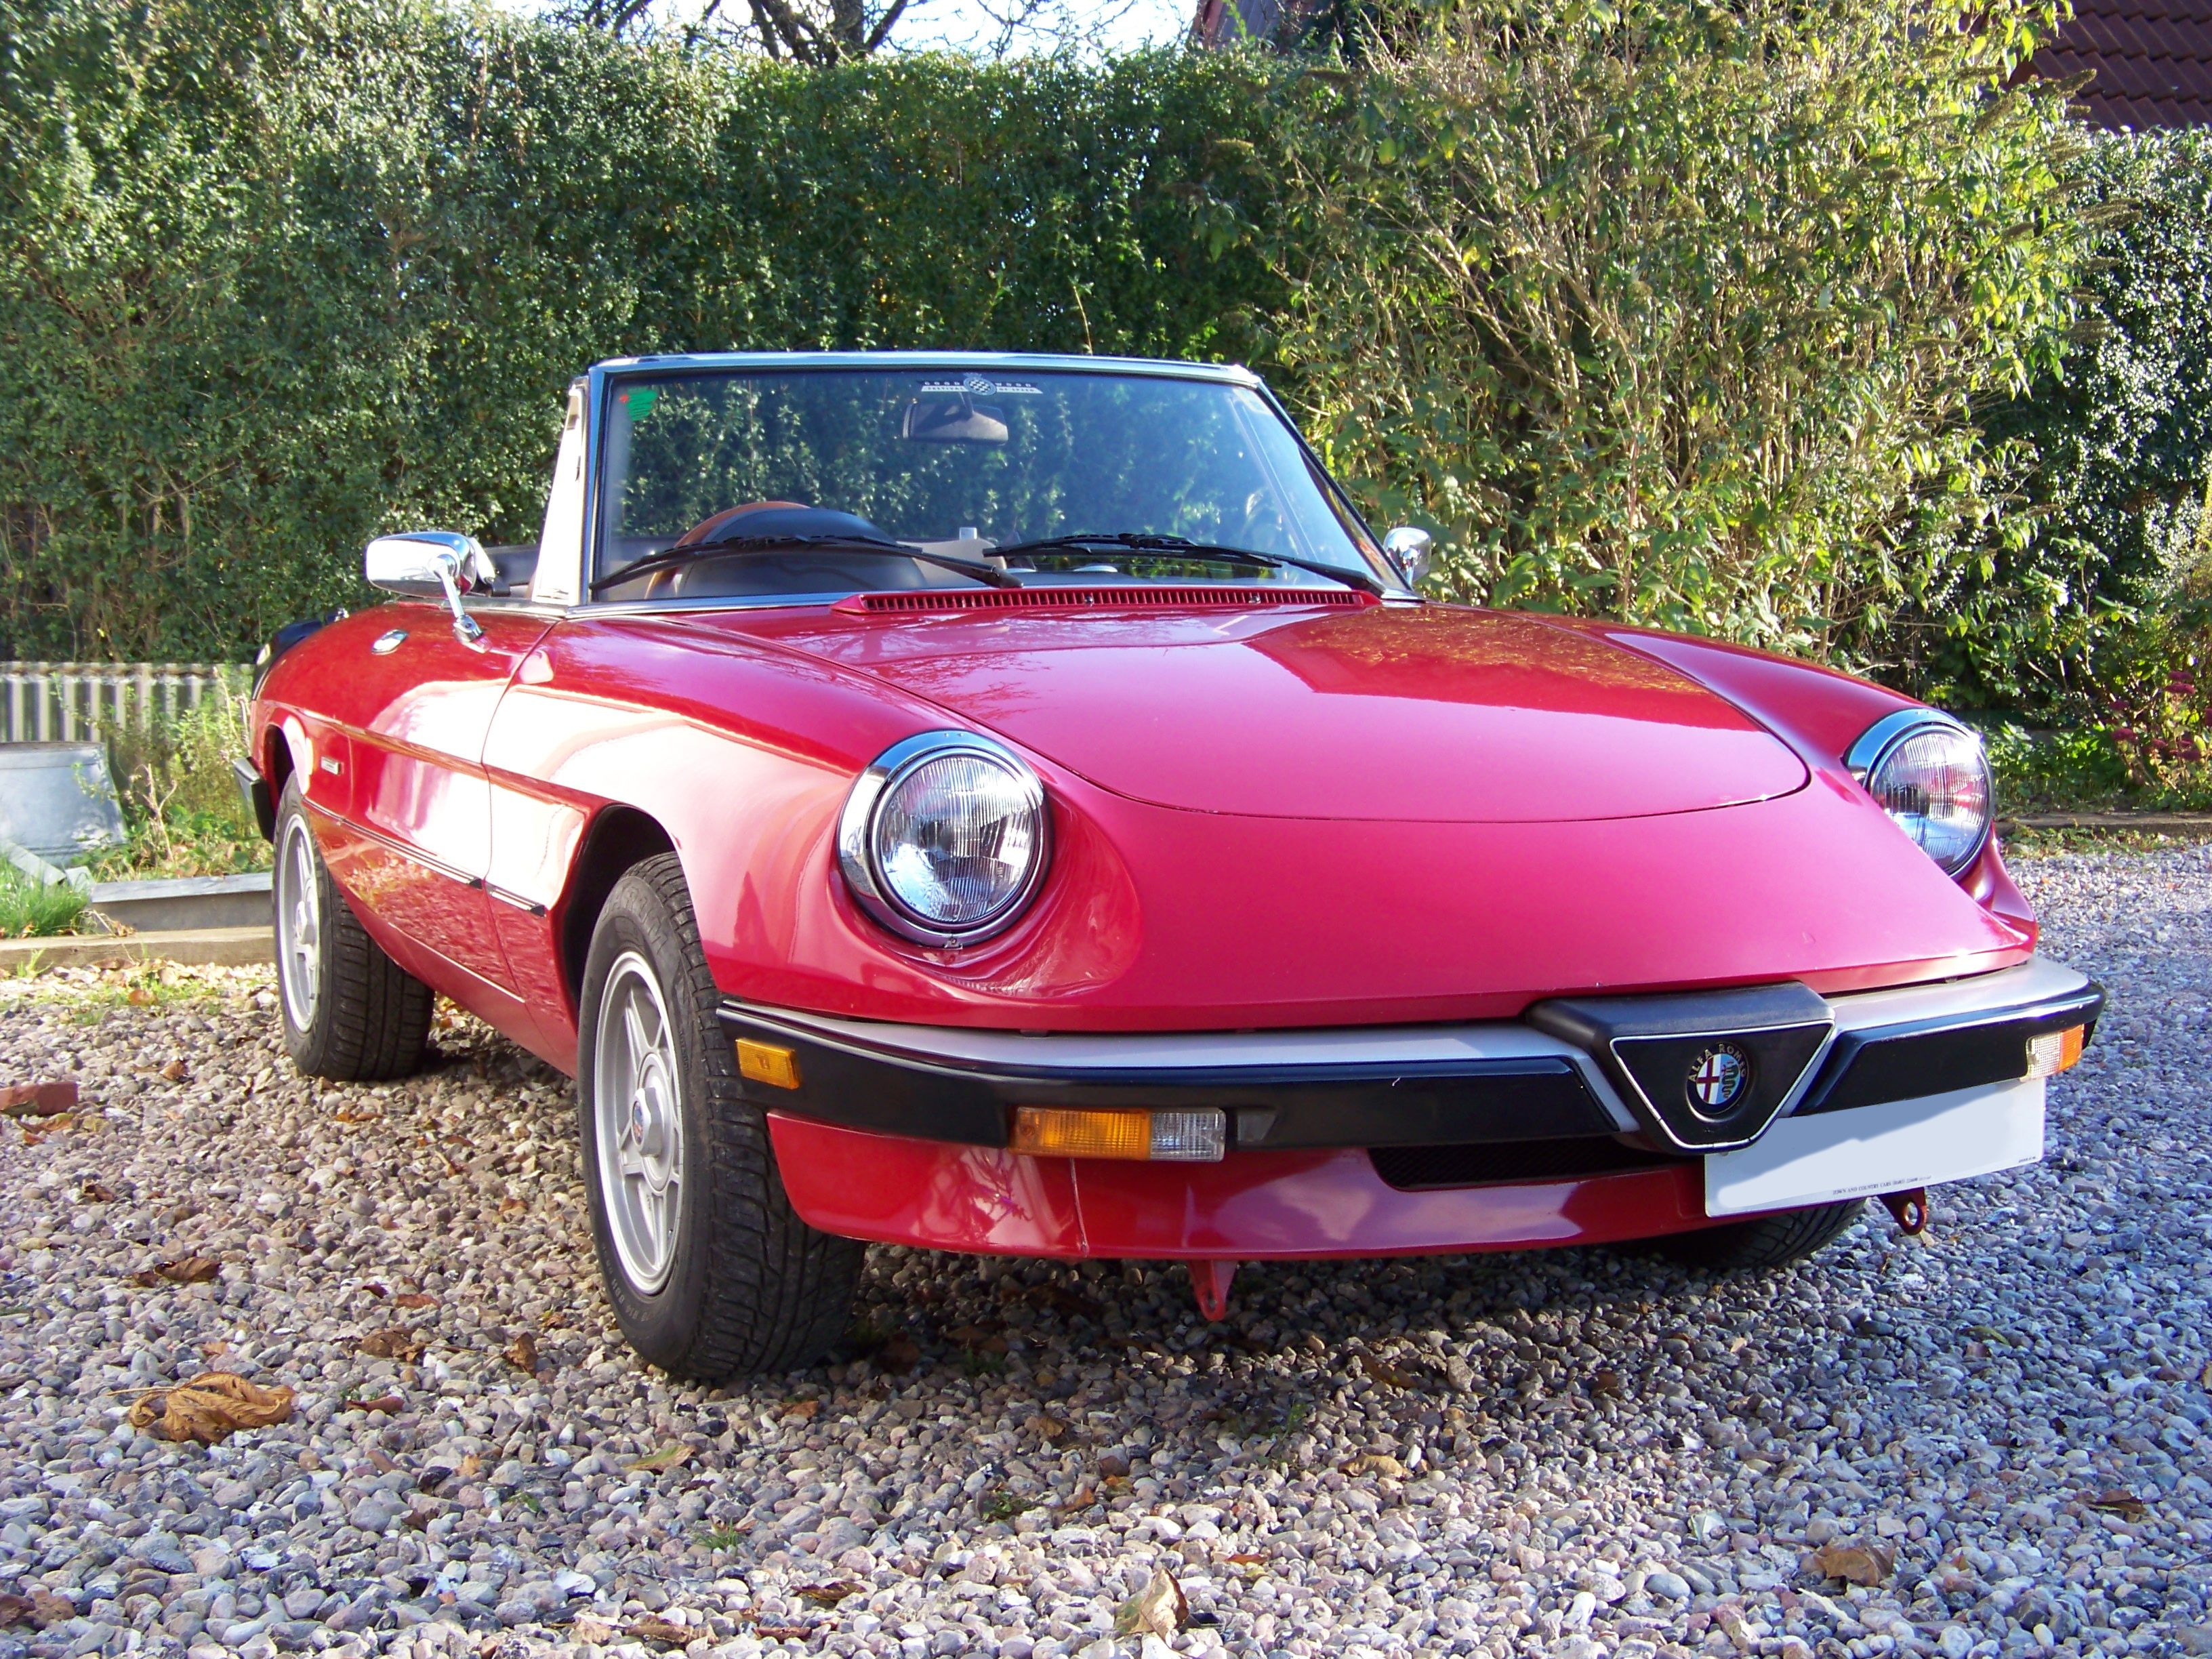 1989 Alfa Spider 2 0 Gets more beautiful with every passing year